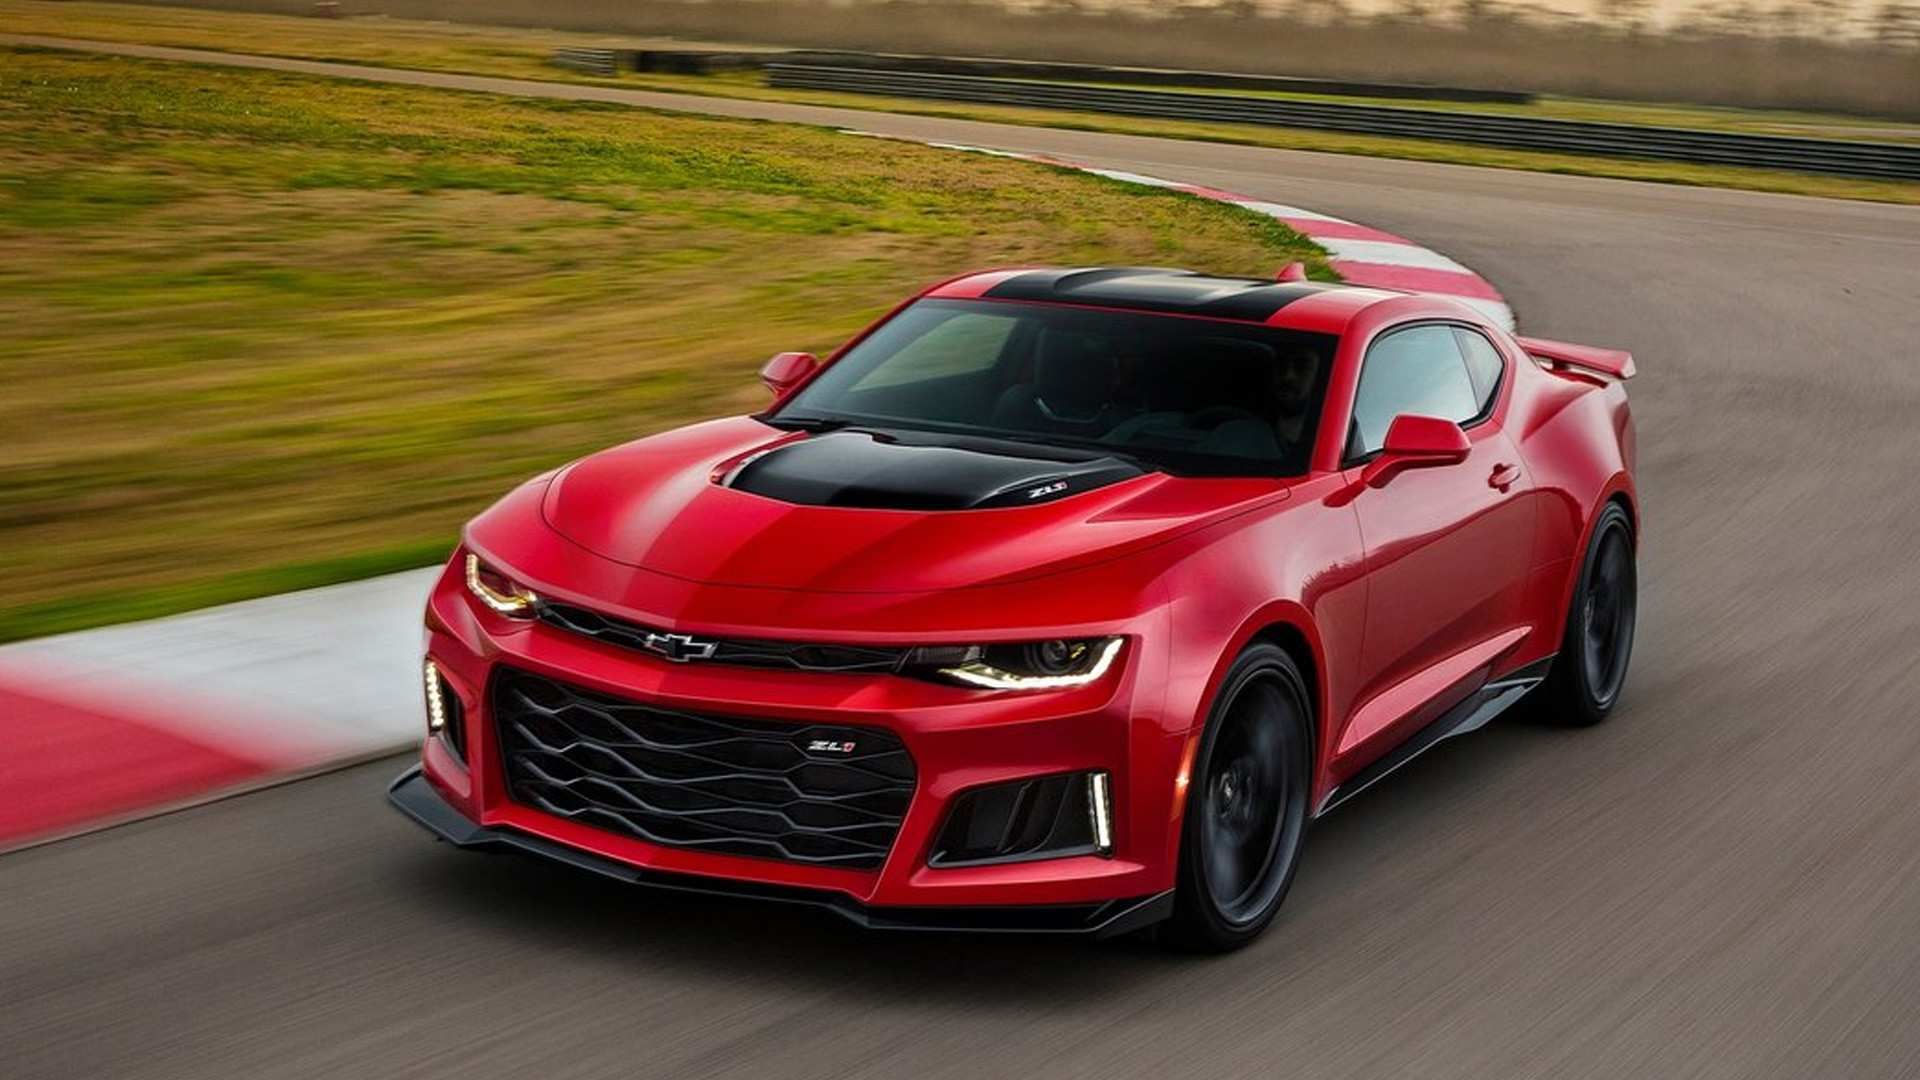 37 The Best 2020 The Camaro Ss Release